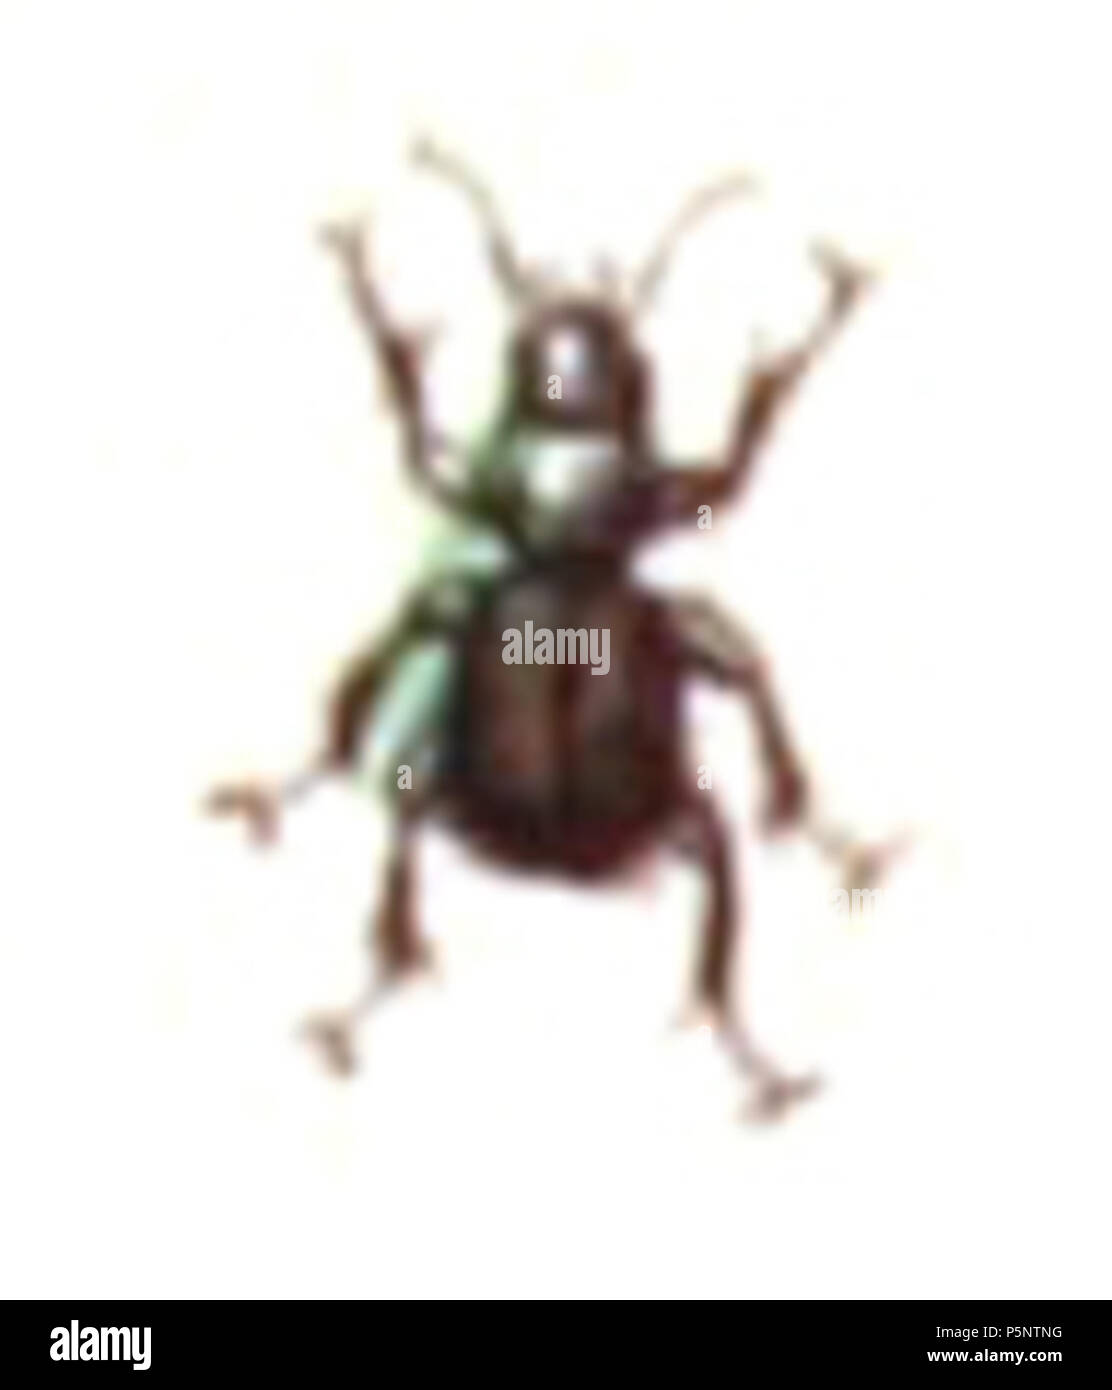 N/A. Metallina lampros = Bembidion lampros, from Calwer's Käferbuch, Table 6, Picture 32. Taxonomy was updated to 2008, using mostly the sites Fauna Europaea and BioLib. Please contact Sarefo if the determination is wrong! . 1876. Book by   Carl Gustav Calwer  (1821–1874)    Description German ornithologist and entomologist  Date of birth/death 11 November 1821 19 August 1874  Location of birth/death Stuttgart Mineralbad Berg  Authority control  : Q78413 VIAF:64757747 ISNI:0000 0001 0980 5321 GND:116432969 SUDOC:146603133 Koninklijke:07228000X      Gustav Jäger  (1832–1917)     Alternative nam - Stock Image